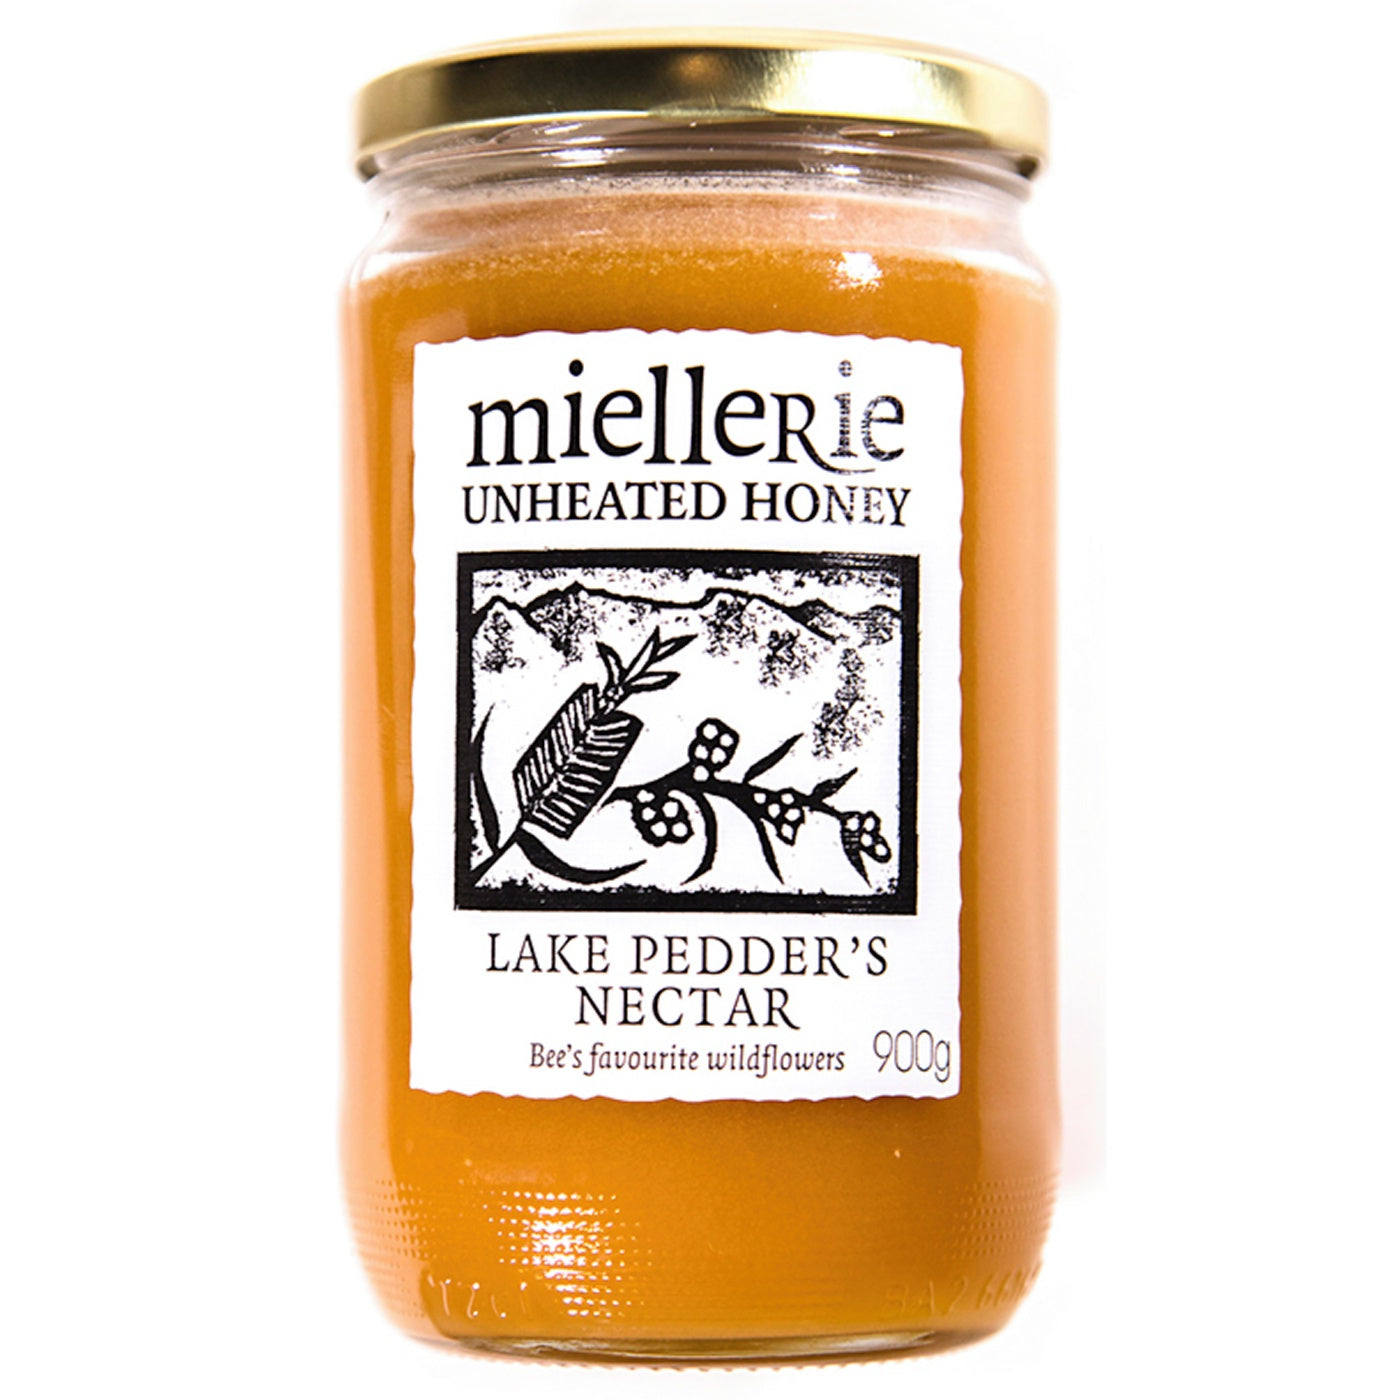 Miellerie Honey – Lake Pedder's Nectar – 900g